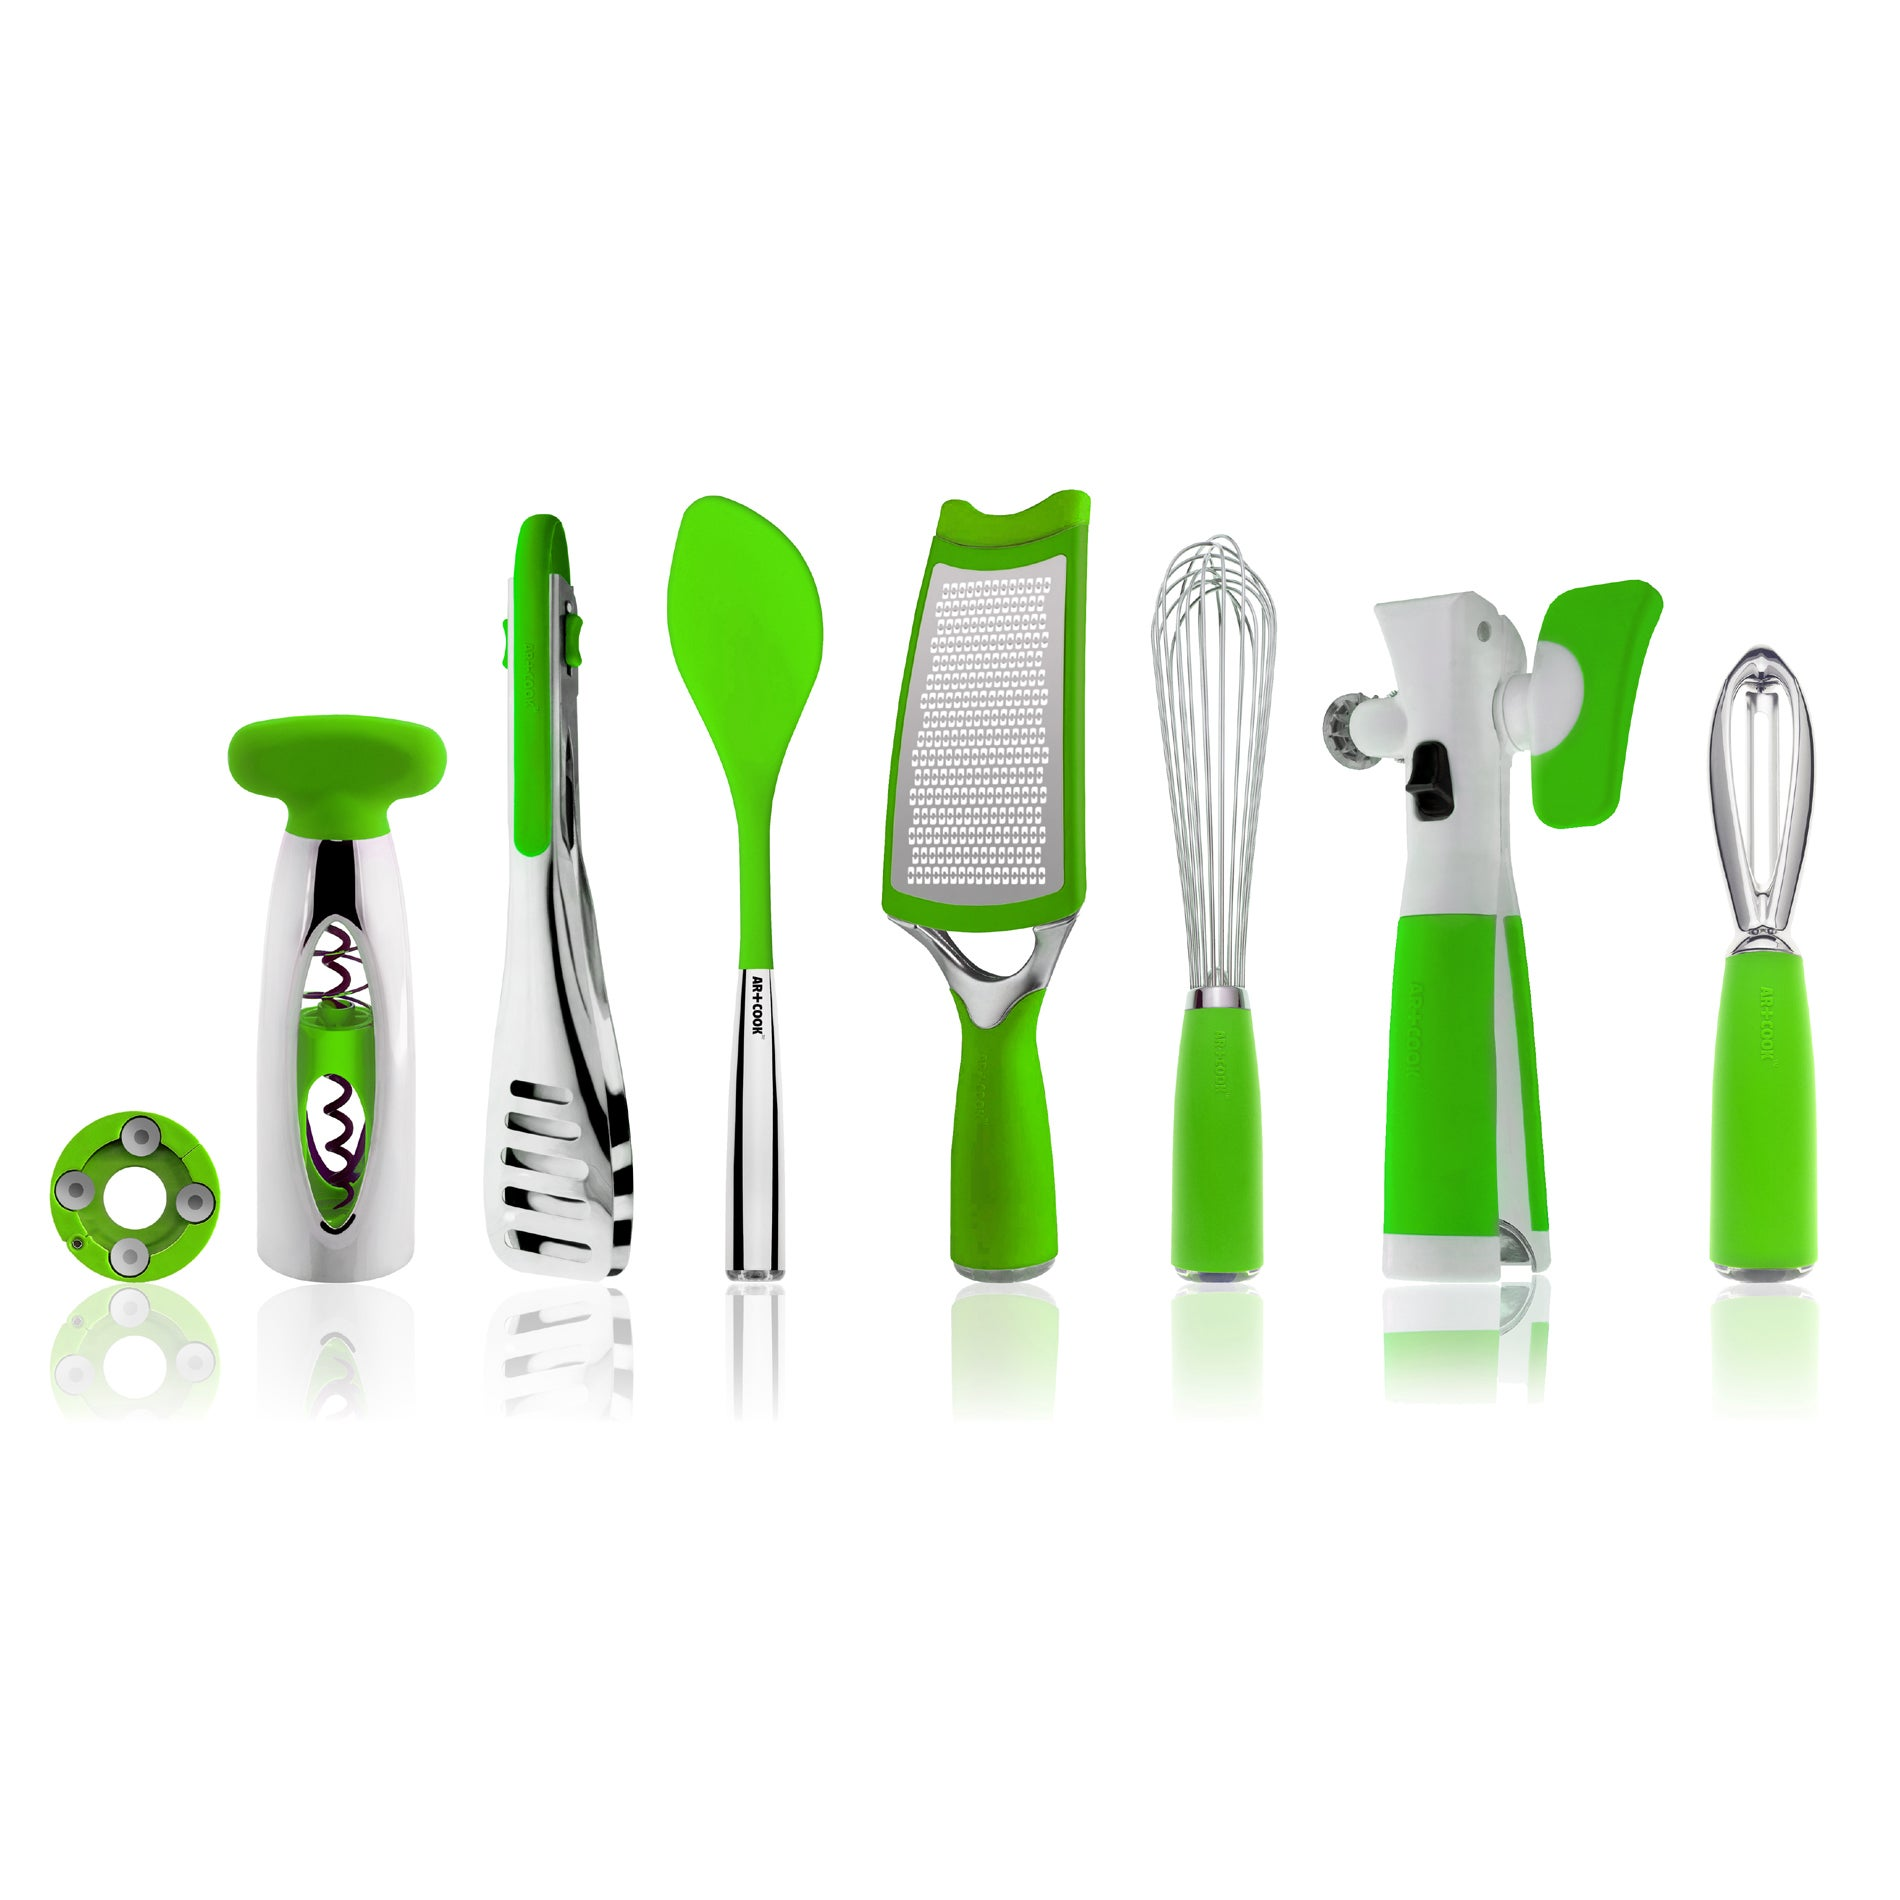 Art and Cook Green 8-piece Kitchen Tool Set - Thumbnail 0